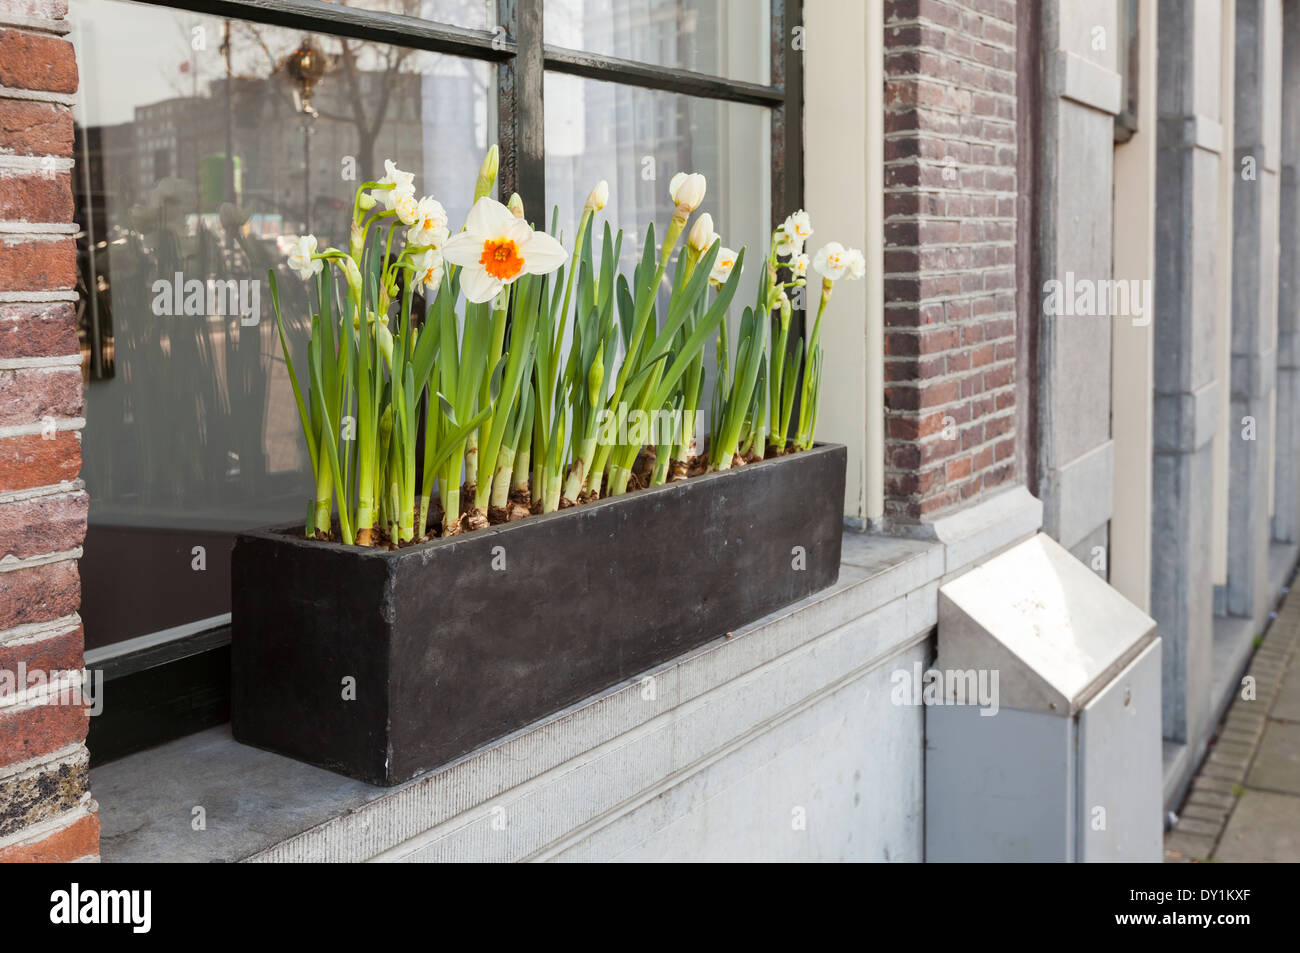 Narcissus flowers grow in wooden box on the windowsill in Amsterdam Stock Photo